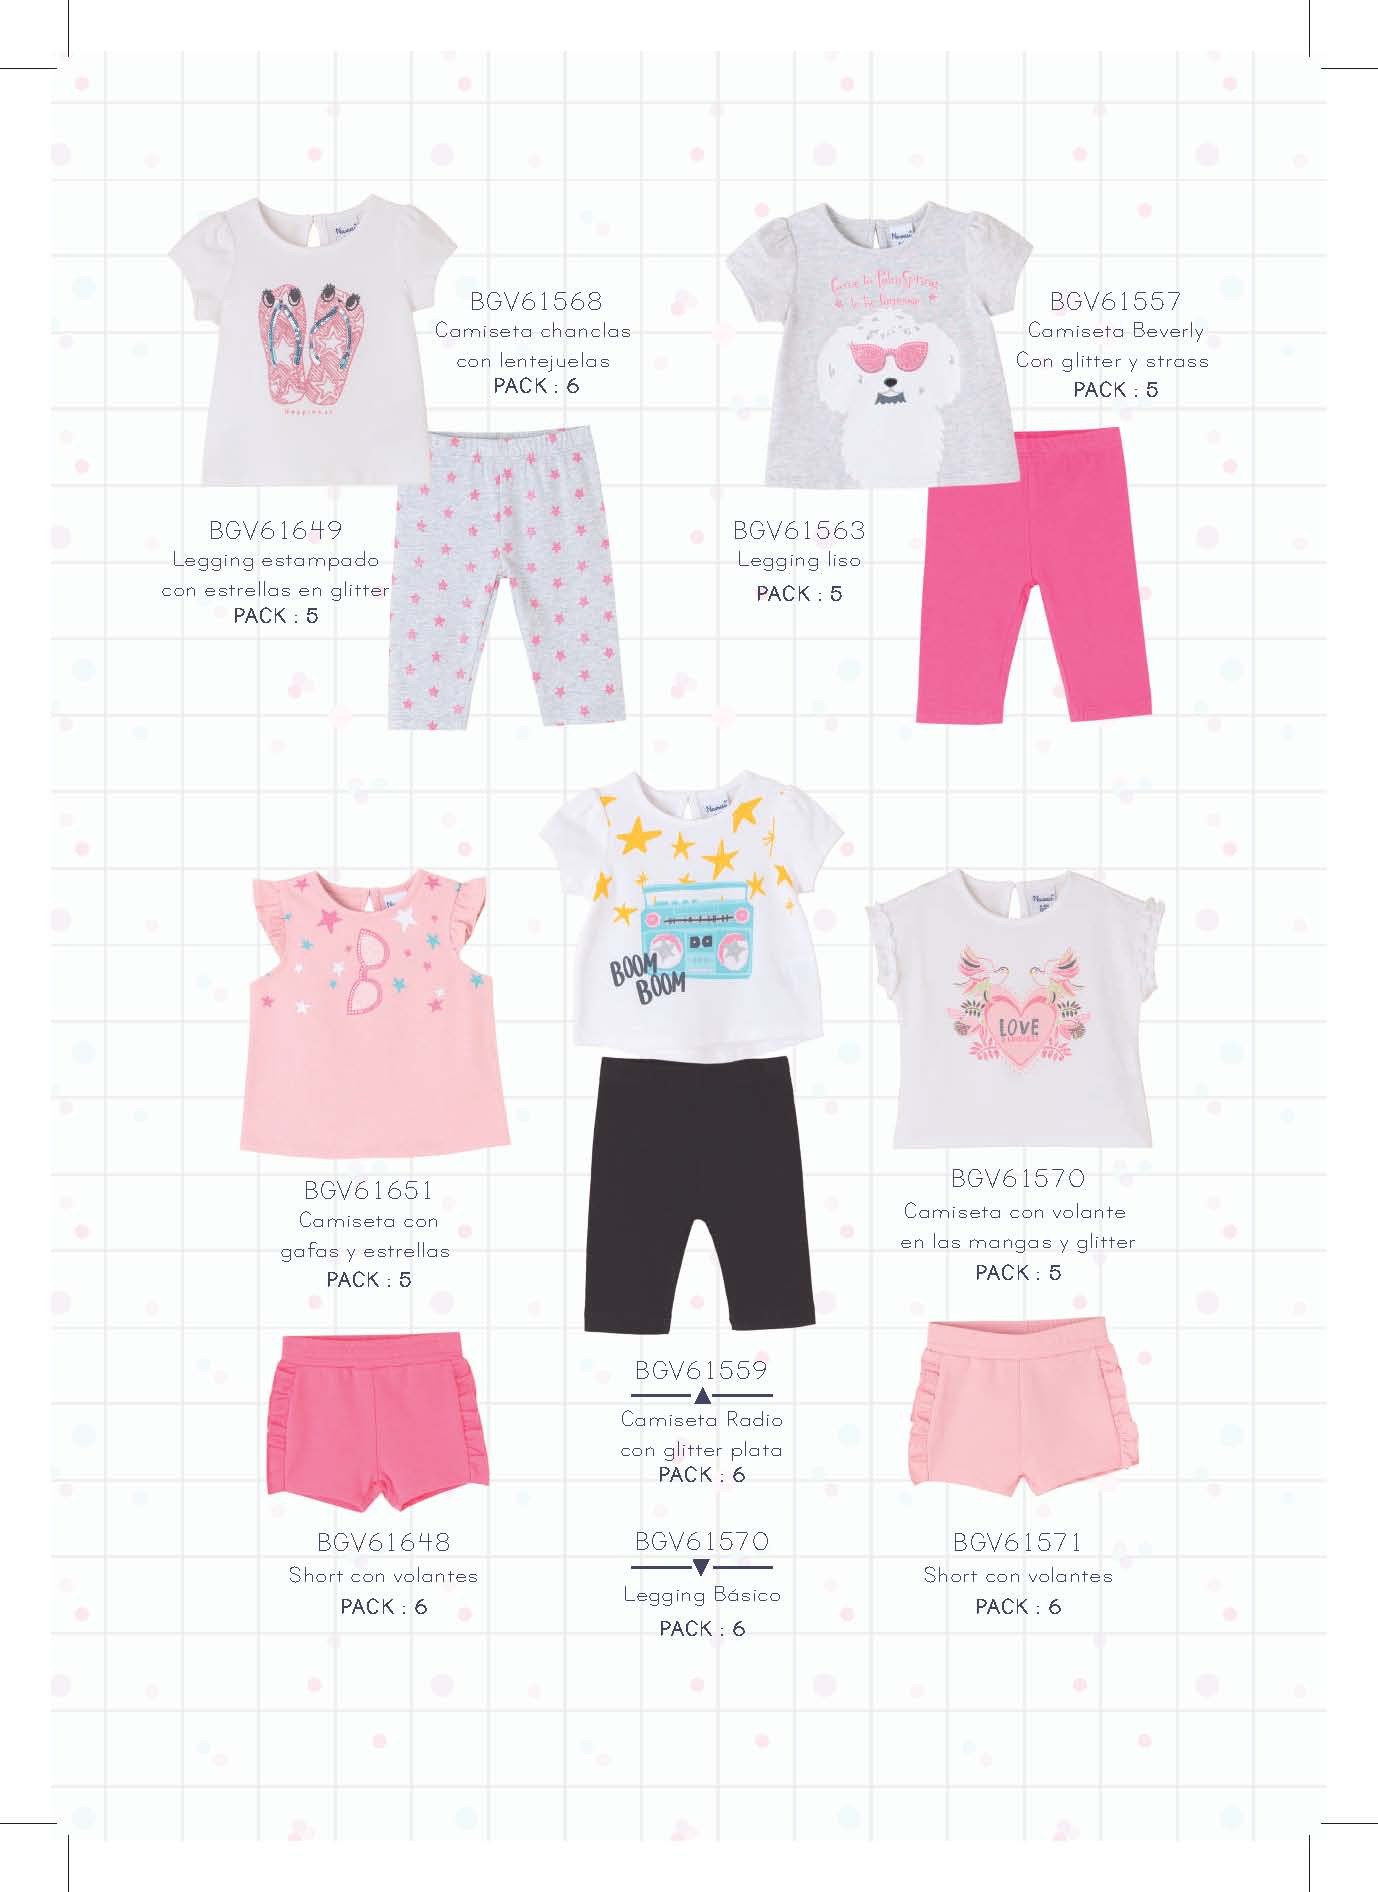 Spain CATALOGO SPORT NEWNESS SS21_Page_0